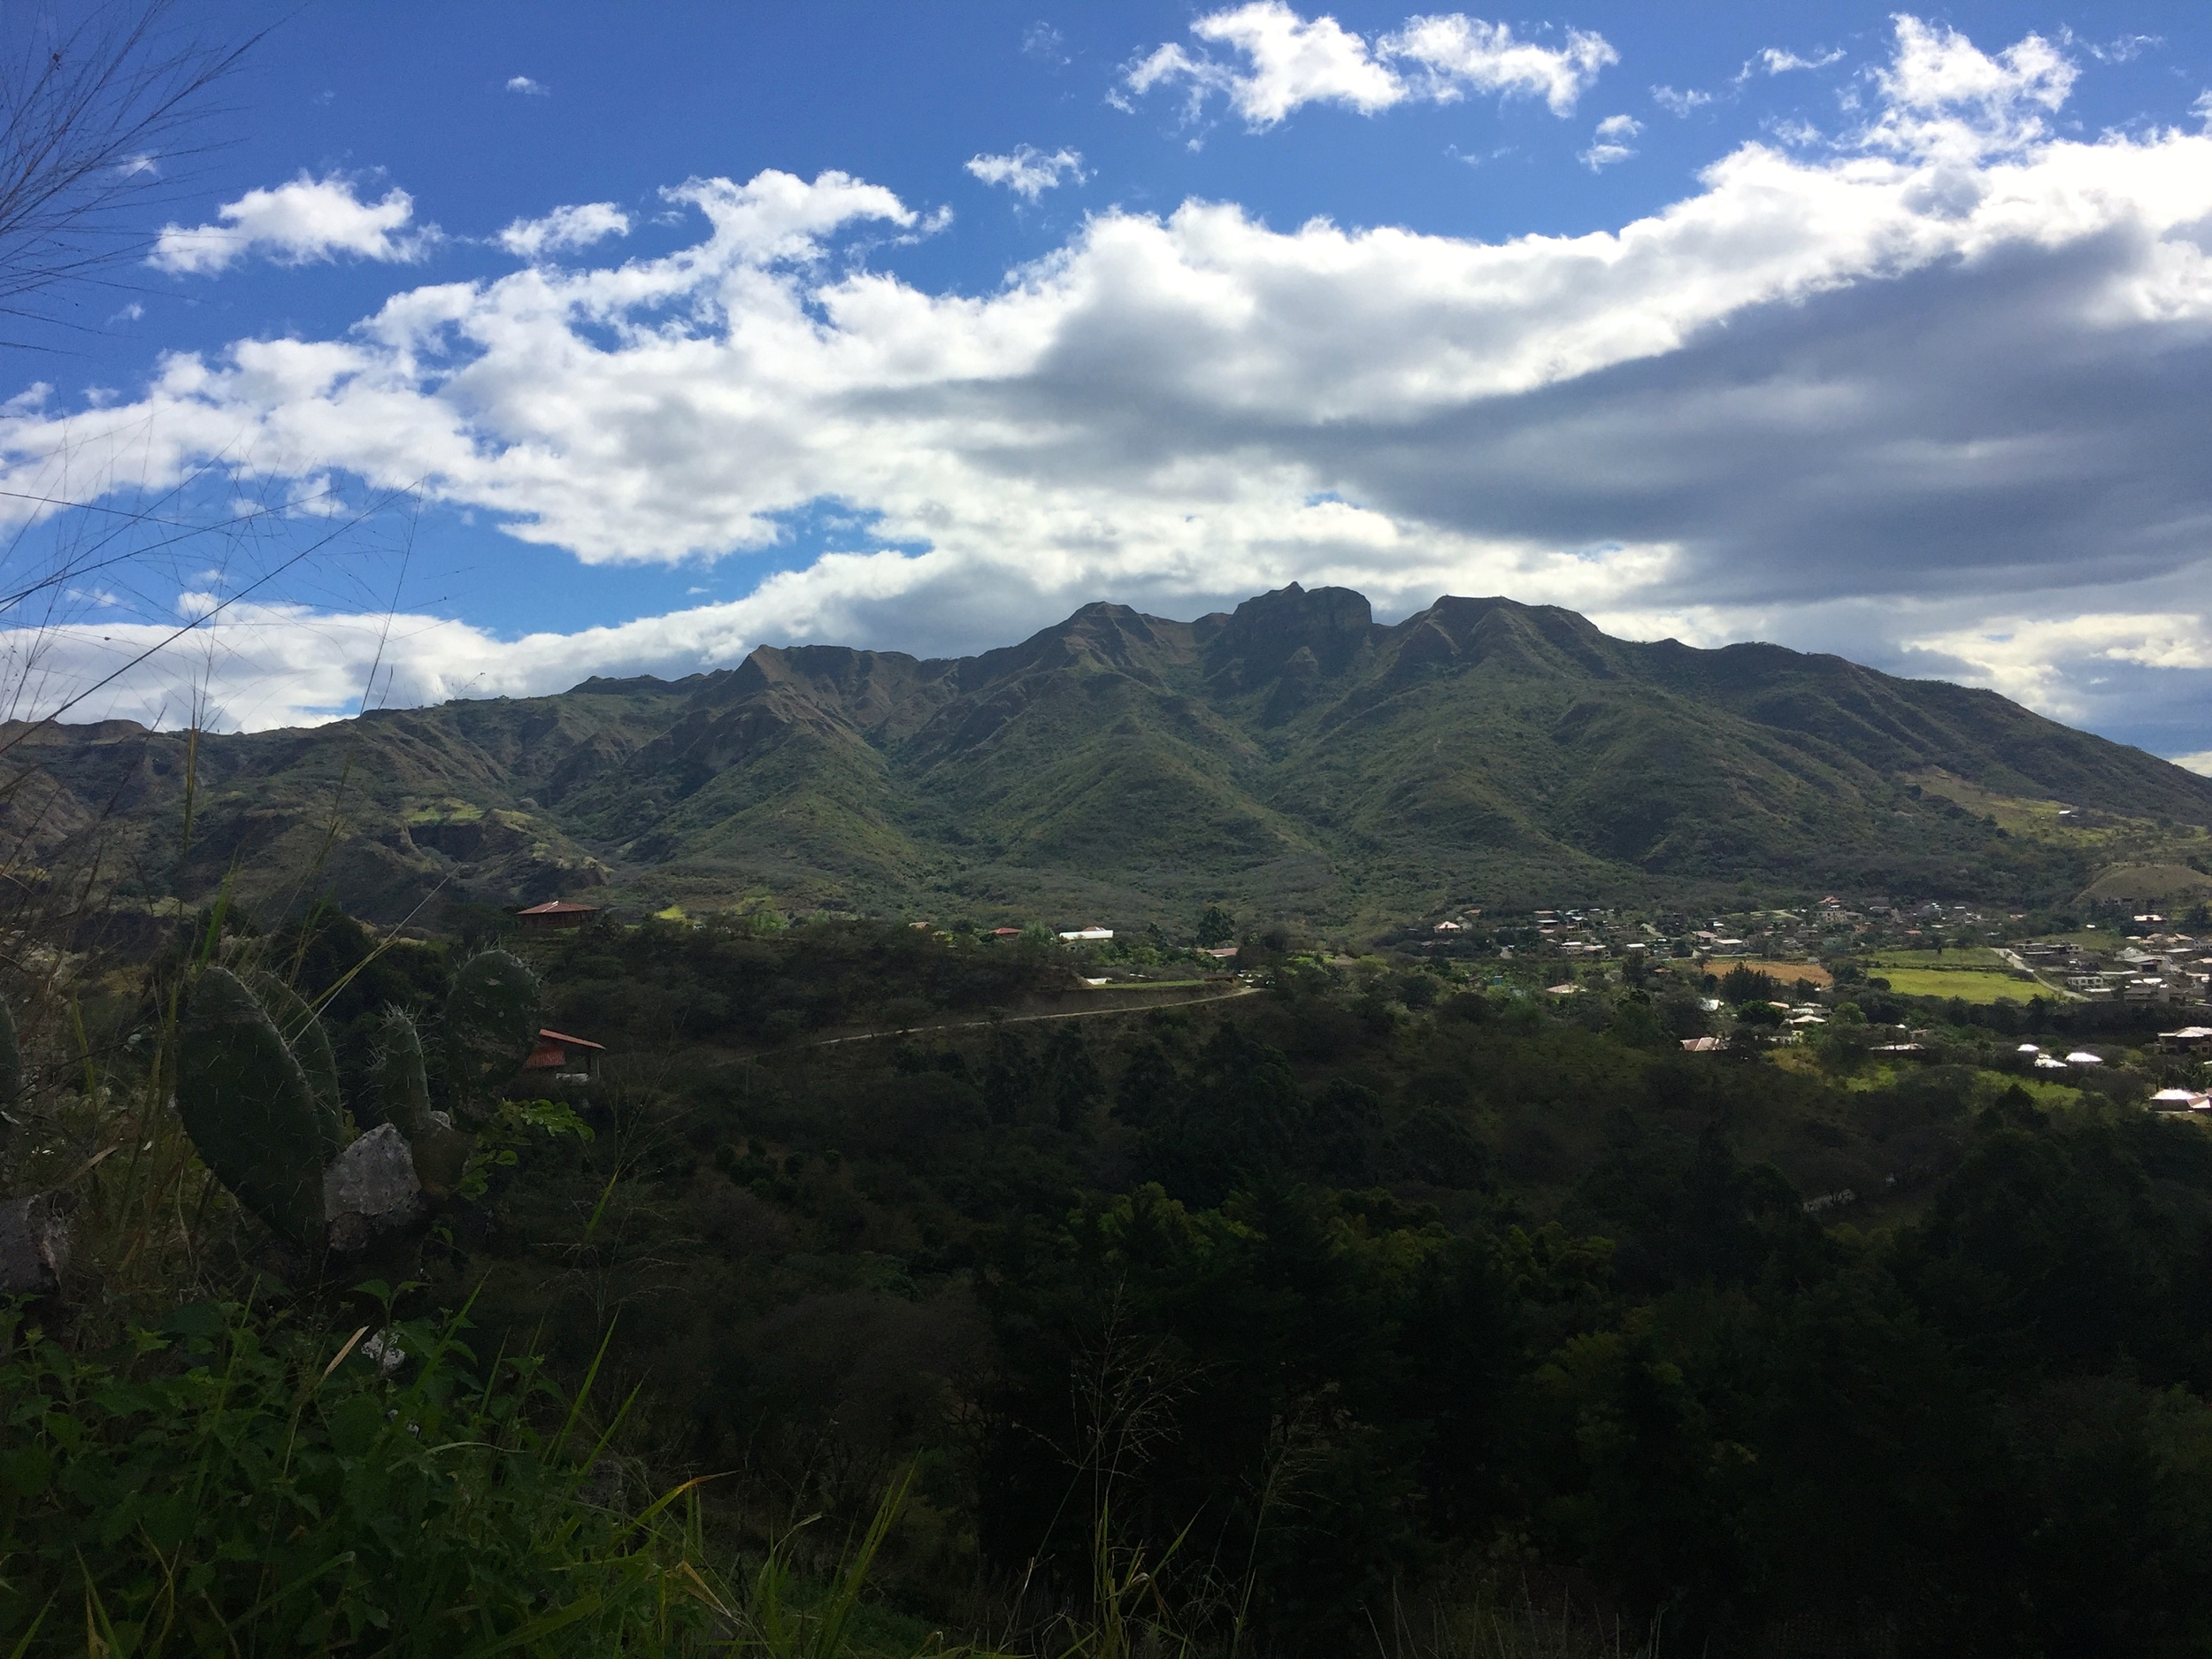 View of the town of Vilcabamba.